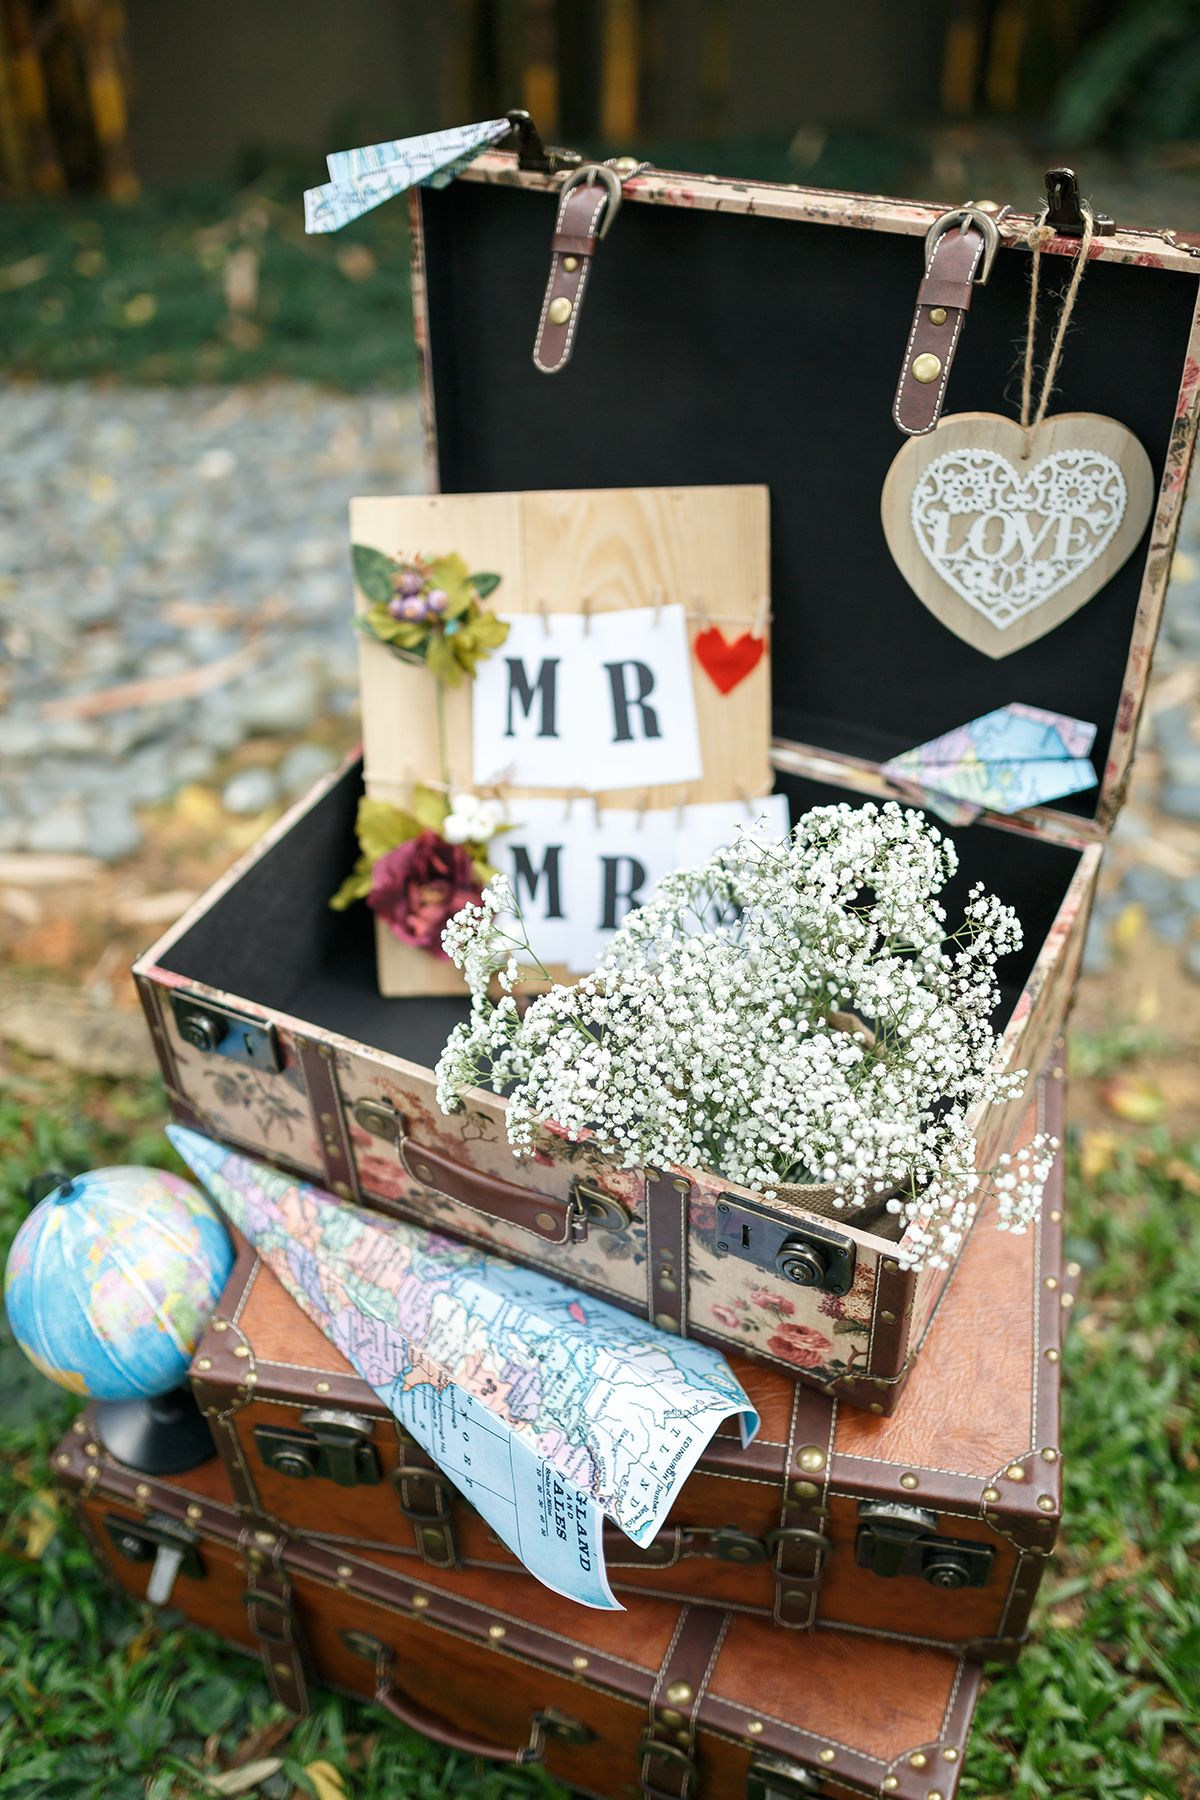 Travel Theme Ideas Matthew And Esthers Travel Themed Wedding At Gita Bayu